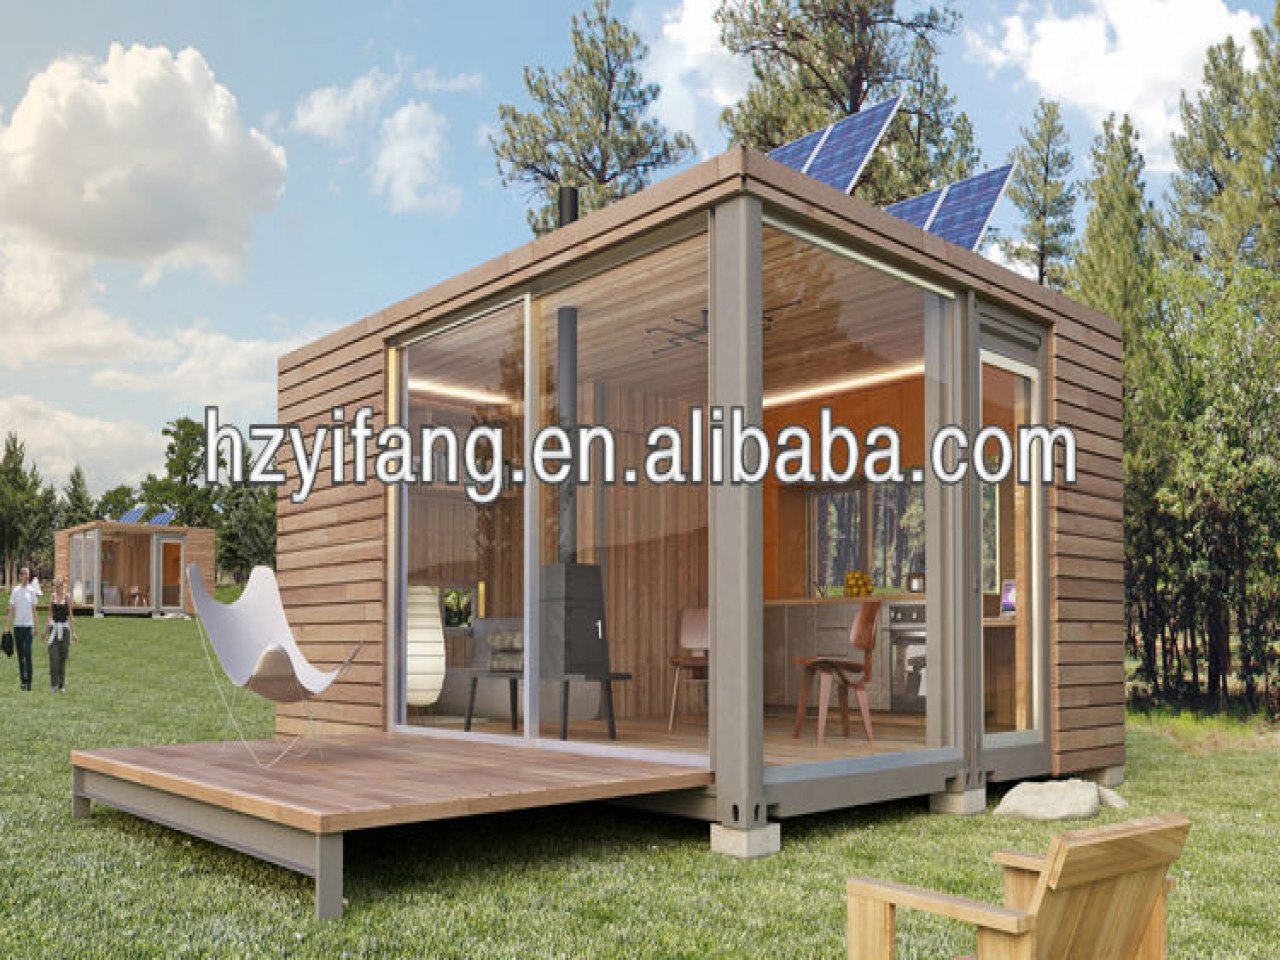 Product prefab cabins small modular cabins and cottages for Modular beach cottages